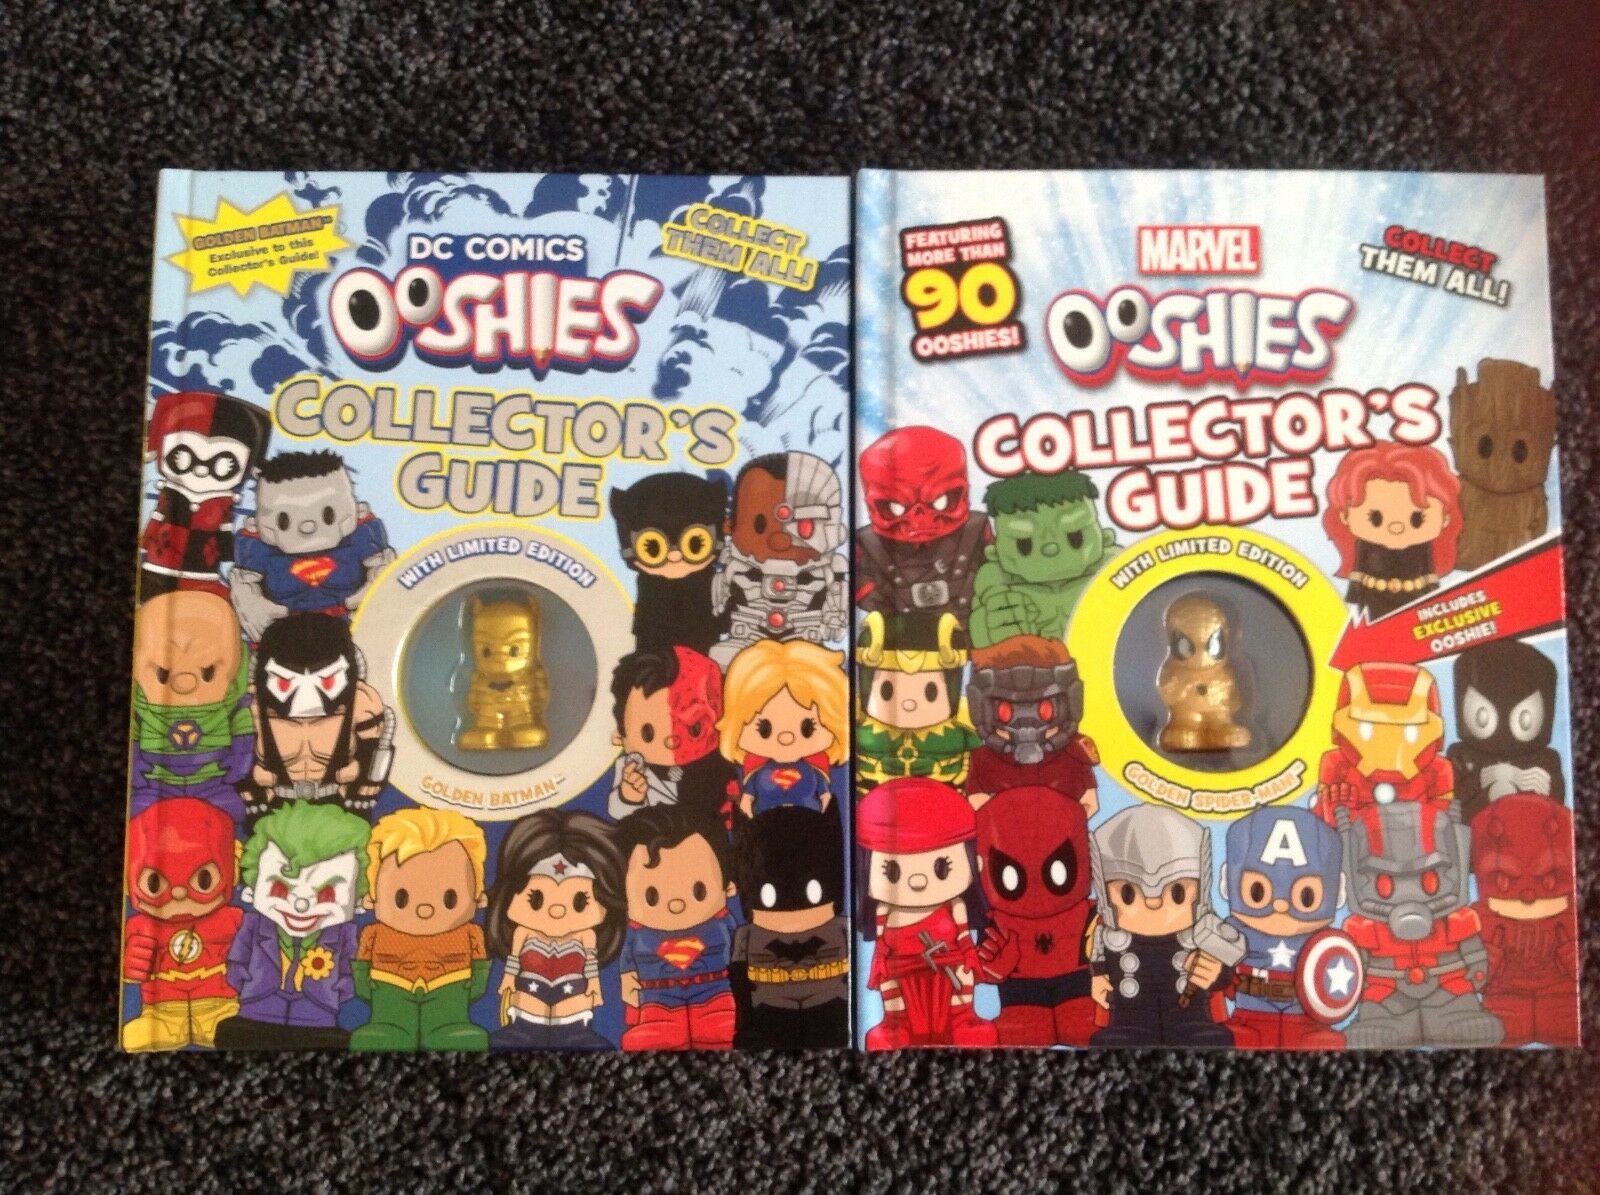 Ooshies Marvel & DC Collectors Guide LIMITED EDITION goldEN BATMAN & SPIDER-MAN